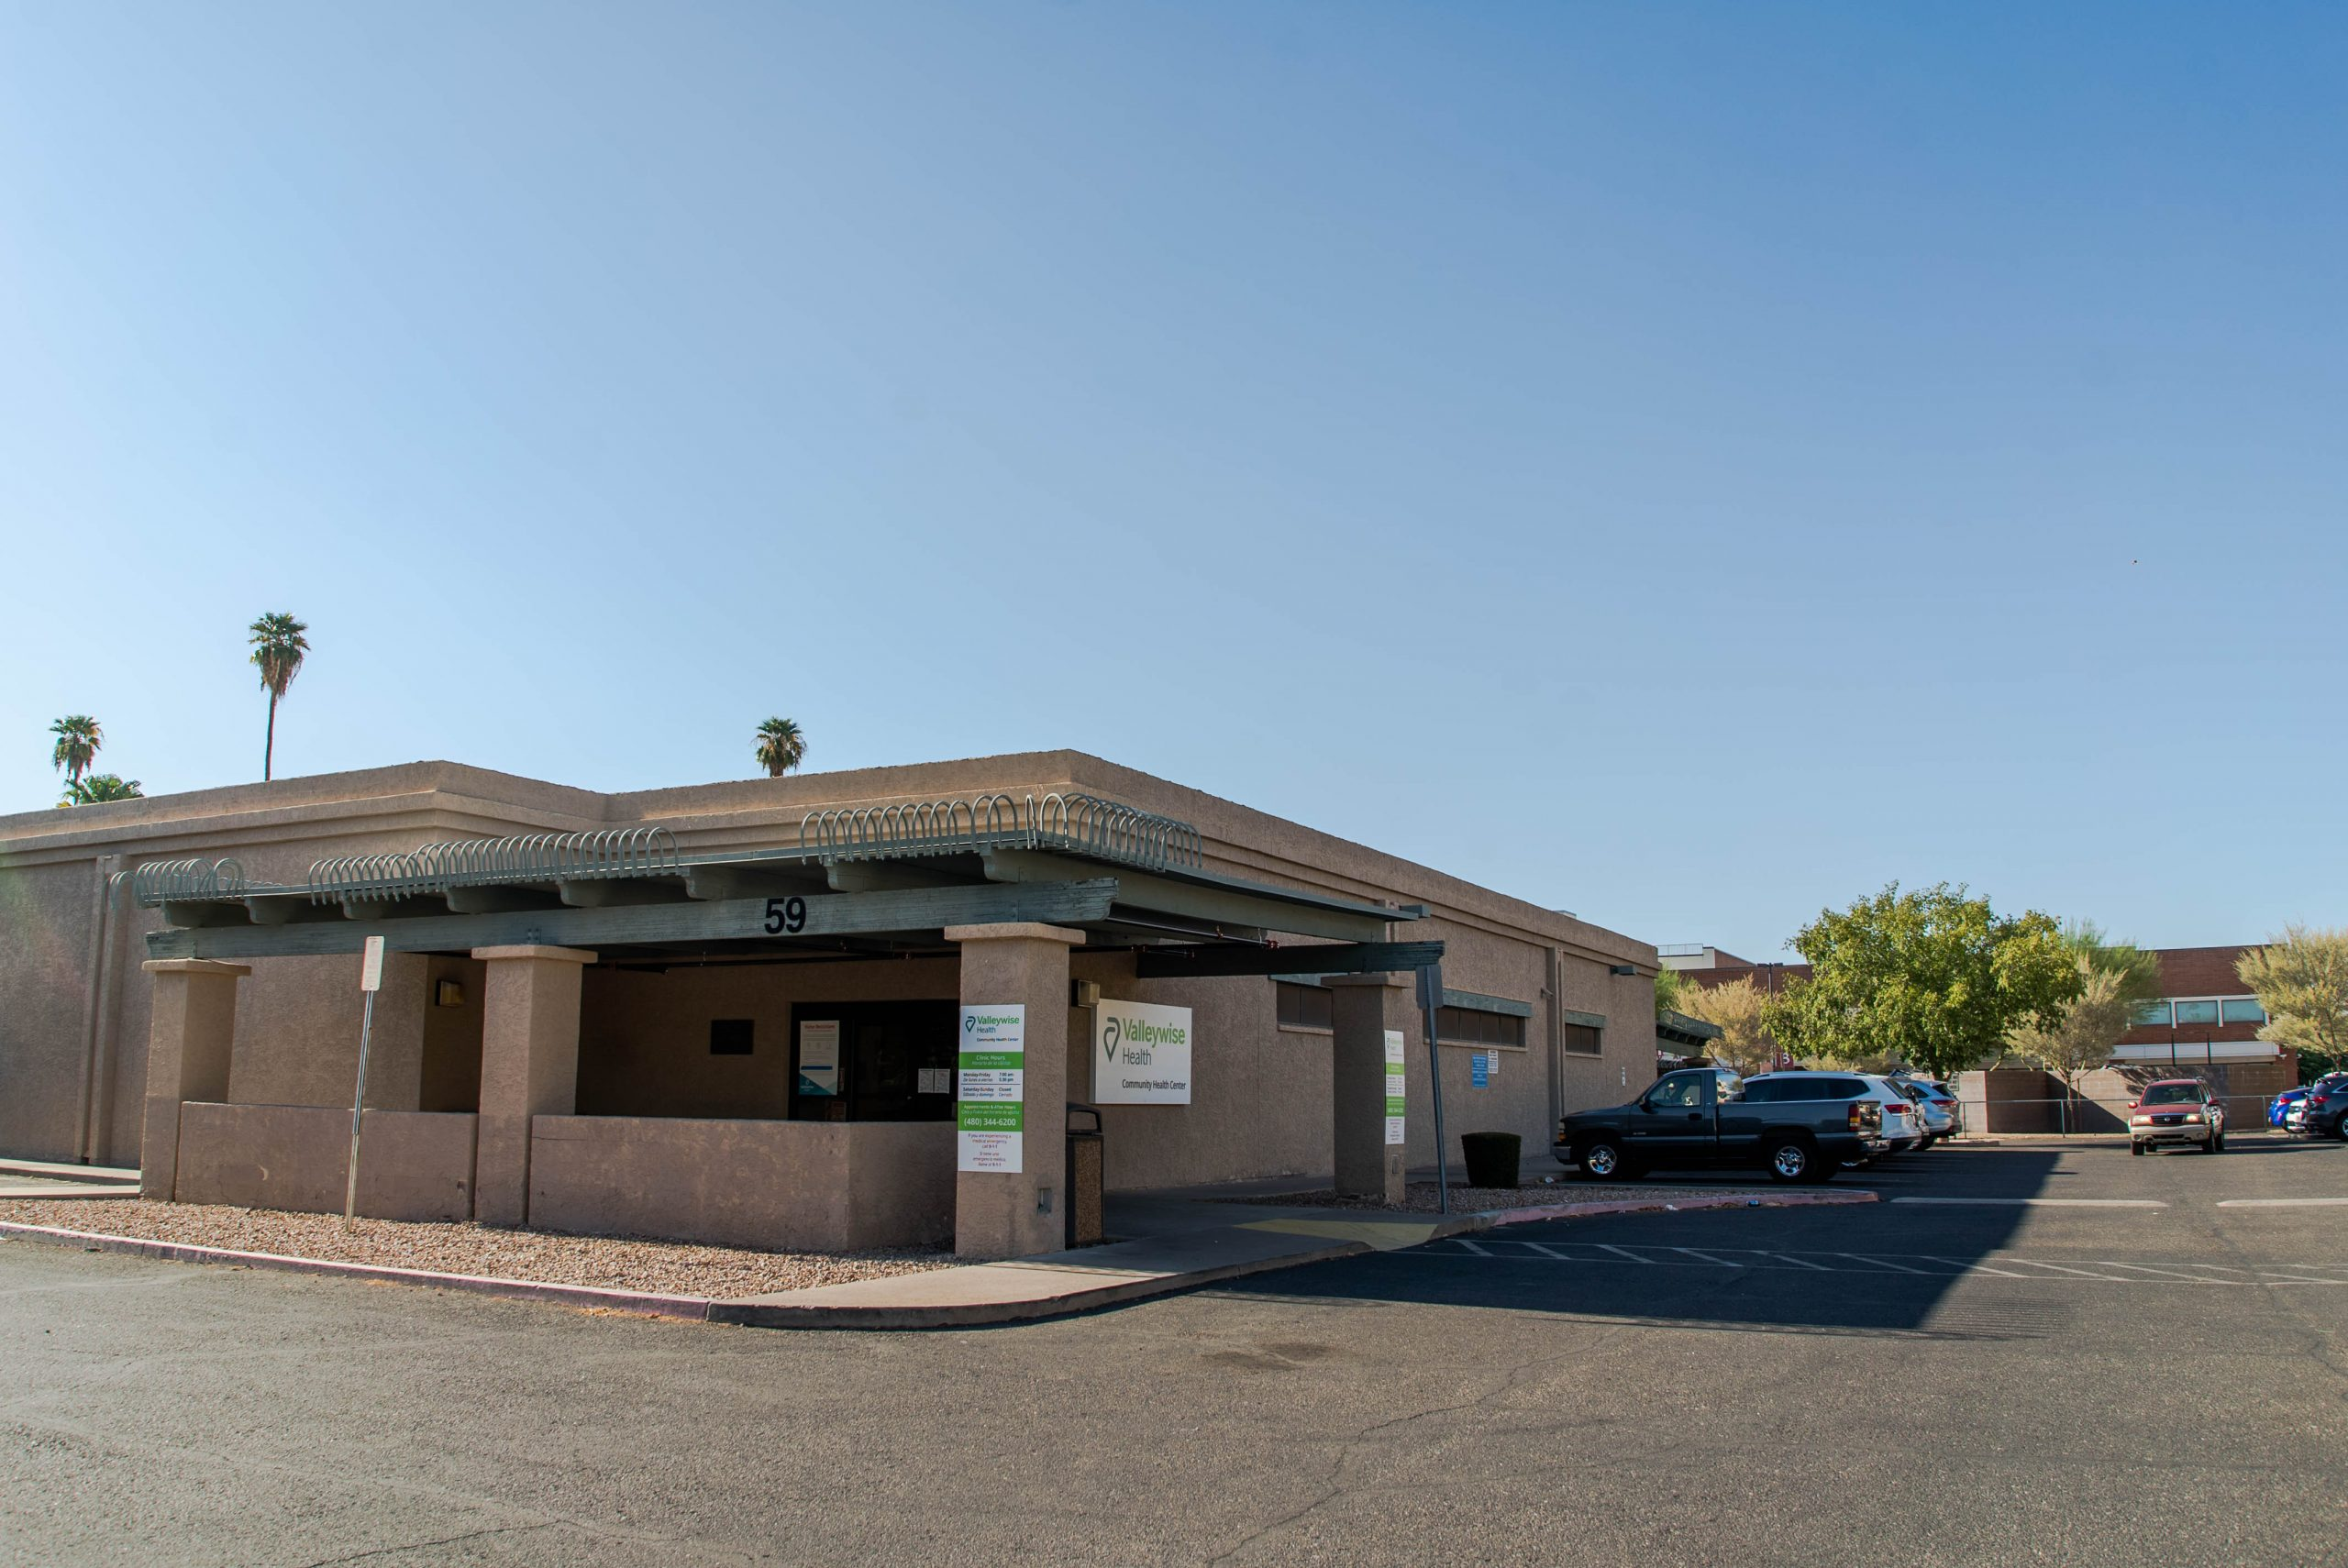 Valleywise Community Health view of the parking lot in Mesa